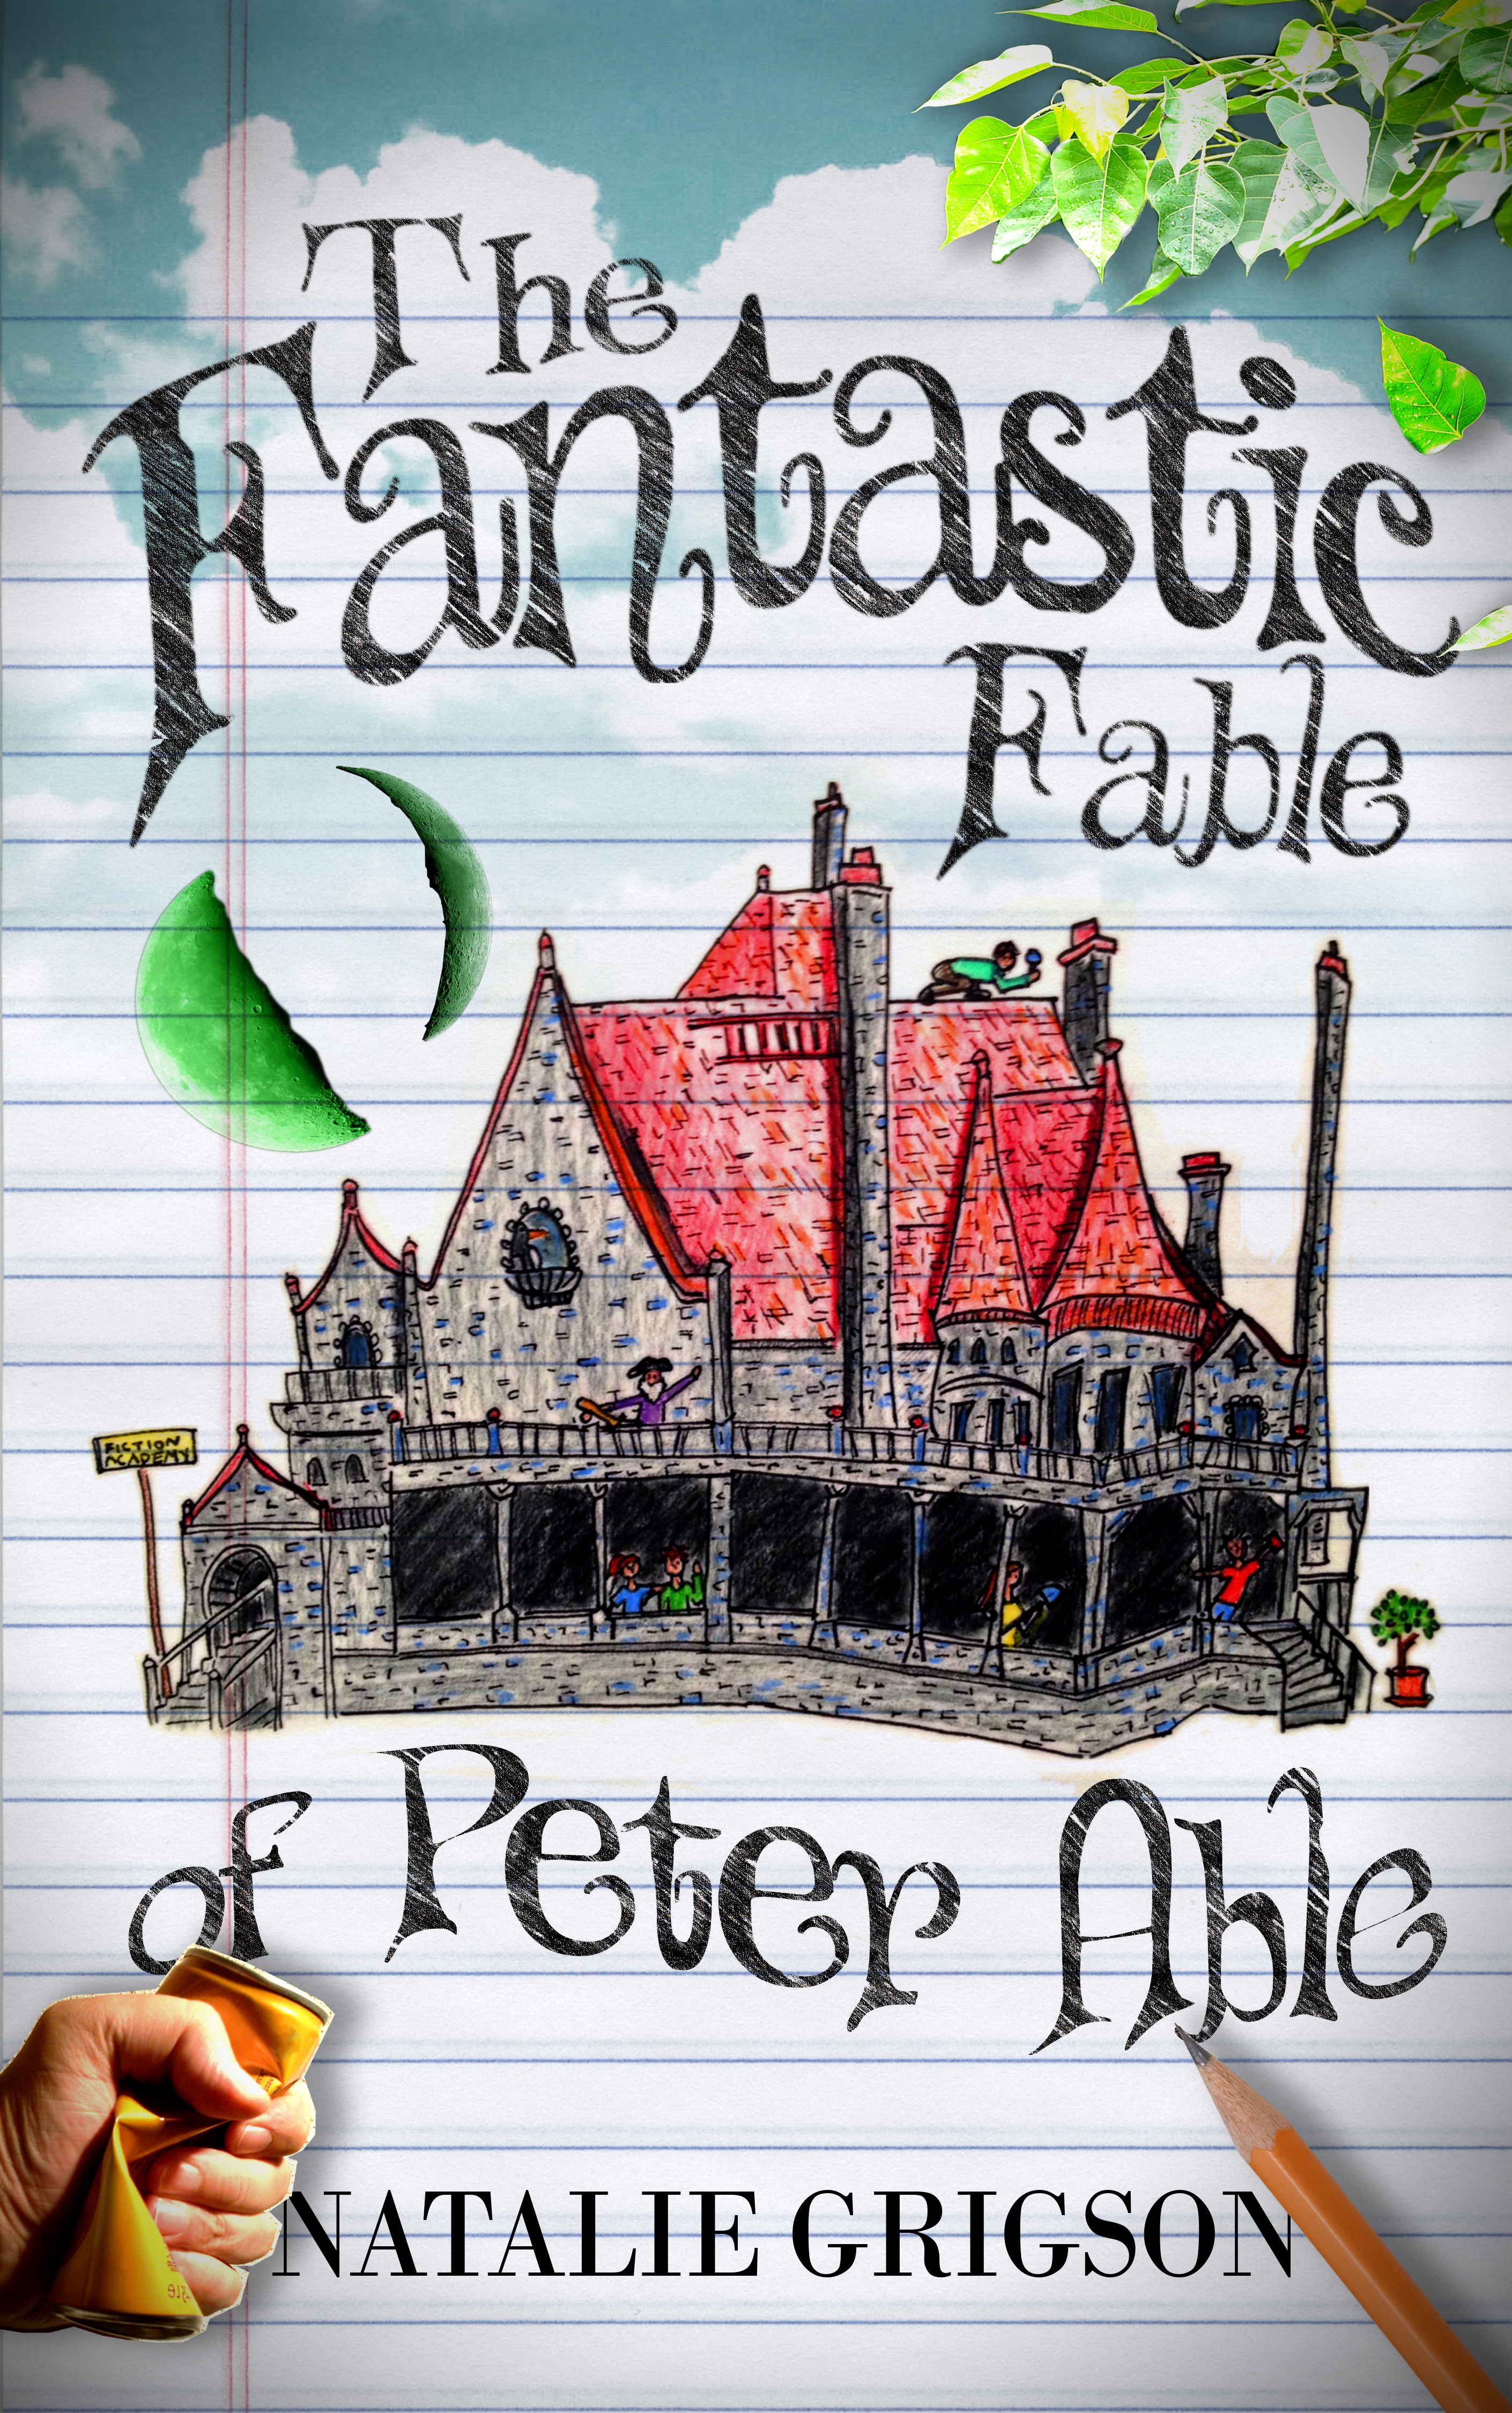 Peter Able 6